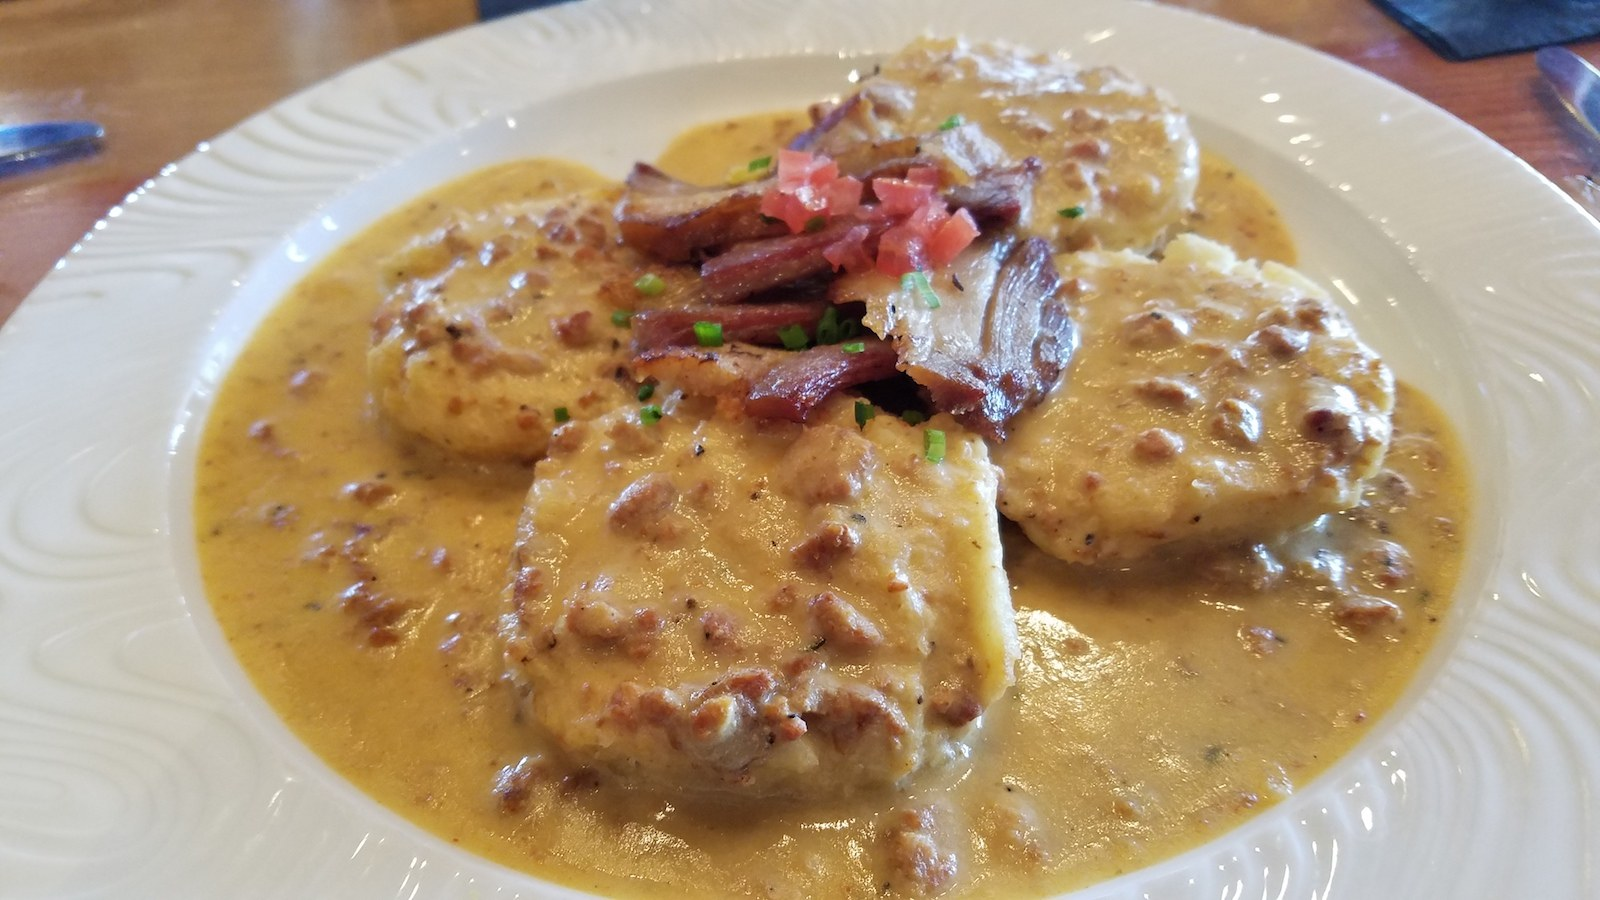 Soco Thornton Park Review - Fresh buttermilk biscuits and gravy with crispy pork belly